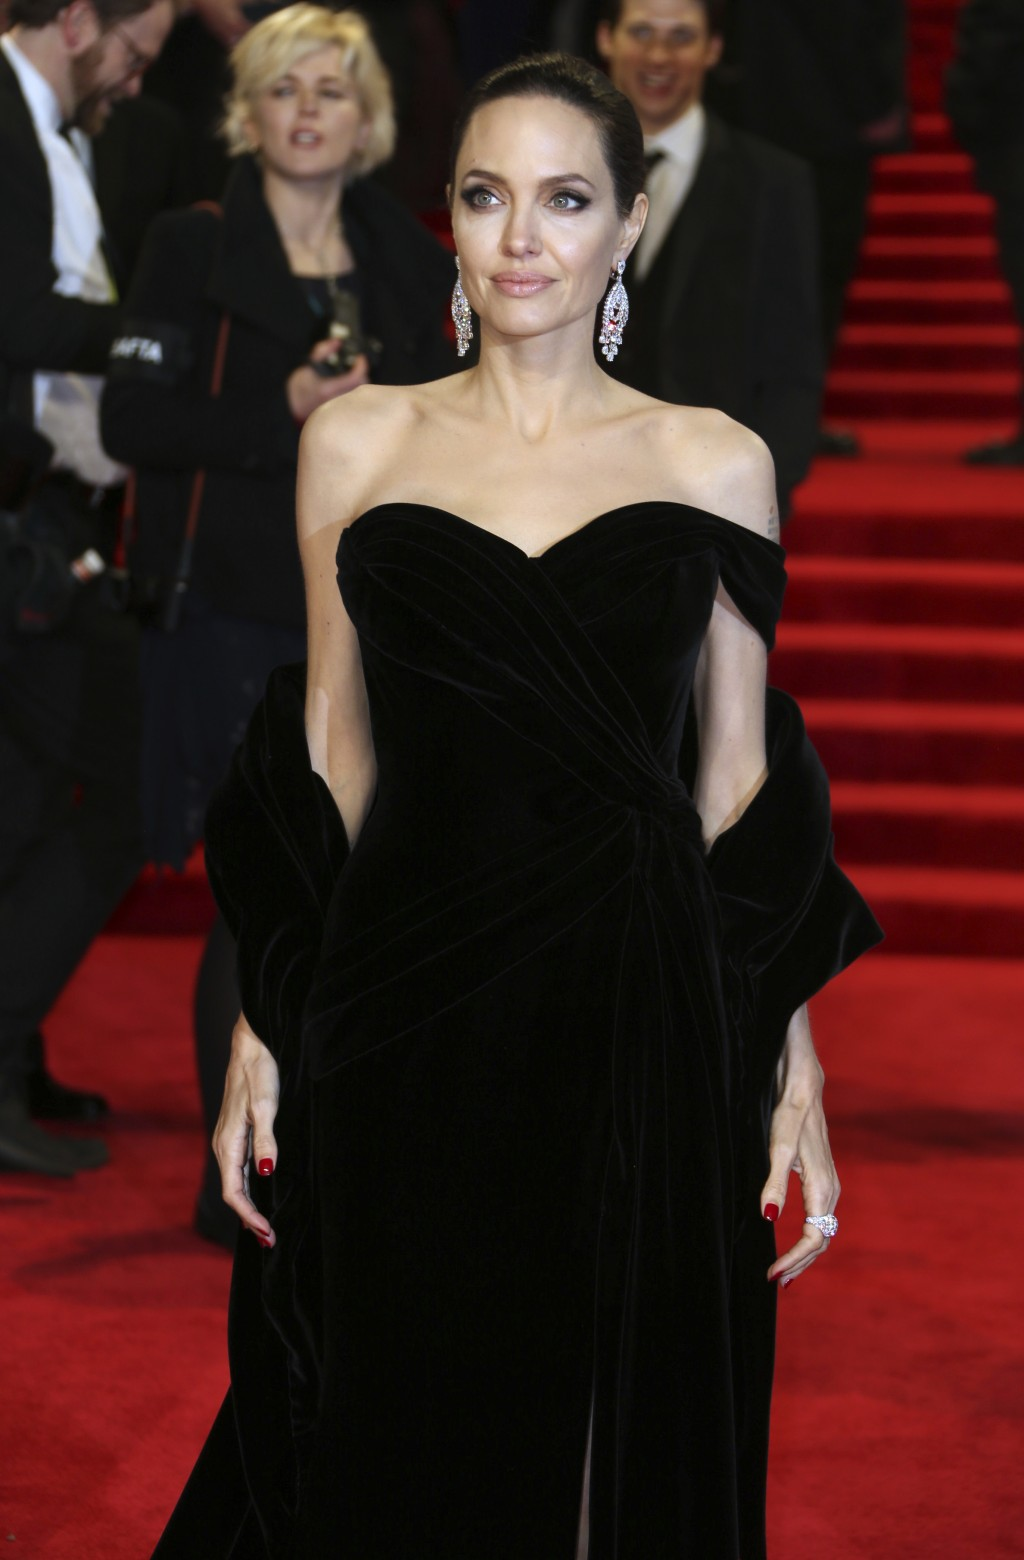 Actress Angelina Jolie poses for photographers upon arrival at the BAFTA 2018 Awards in London, Sunday, Feb. 18, 2018. (Photo by Joel C Ryan/Invision/...